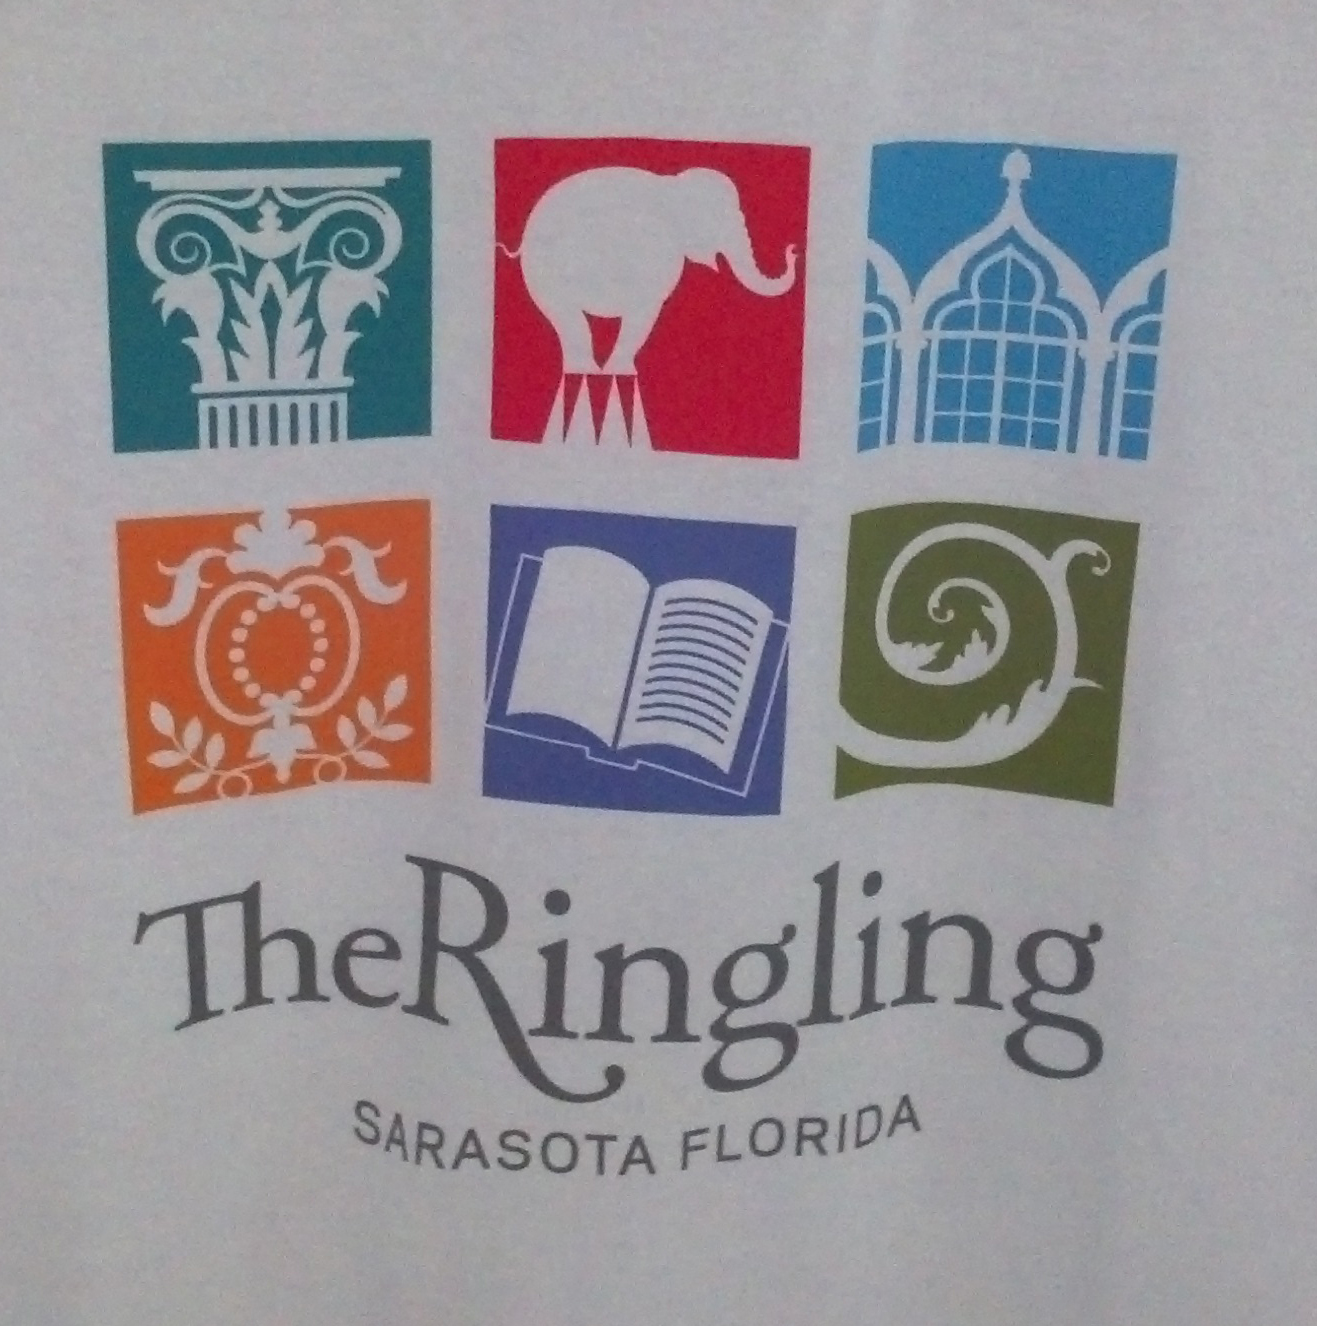 The Ringling Unveils New Brand Identity by Pamela Beck